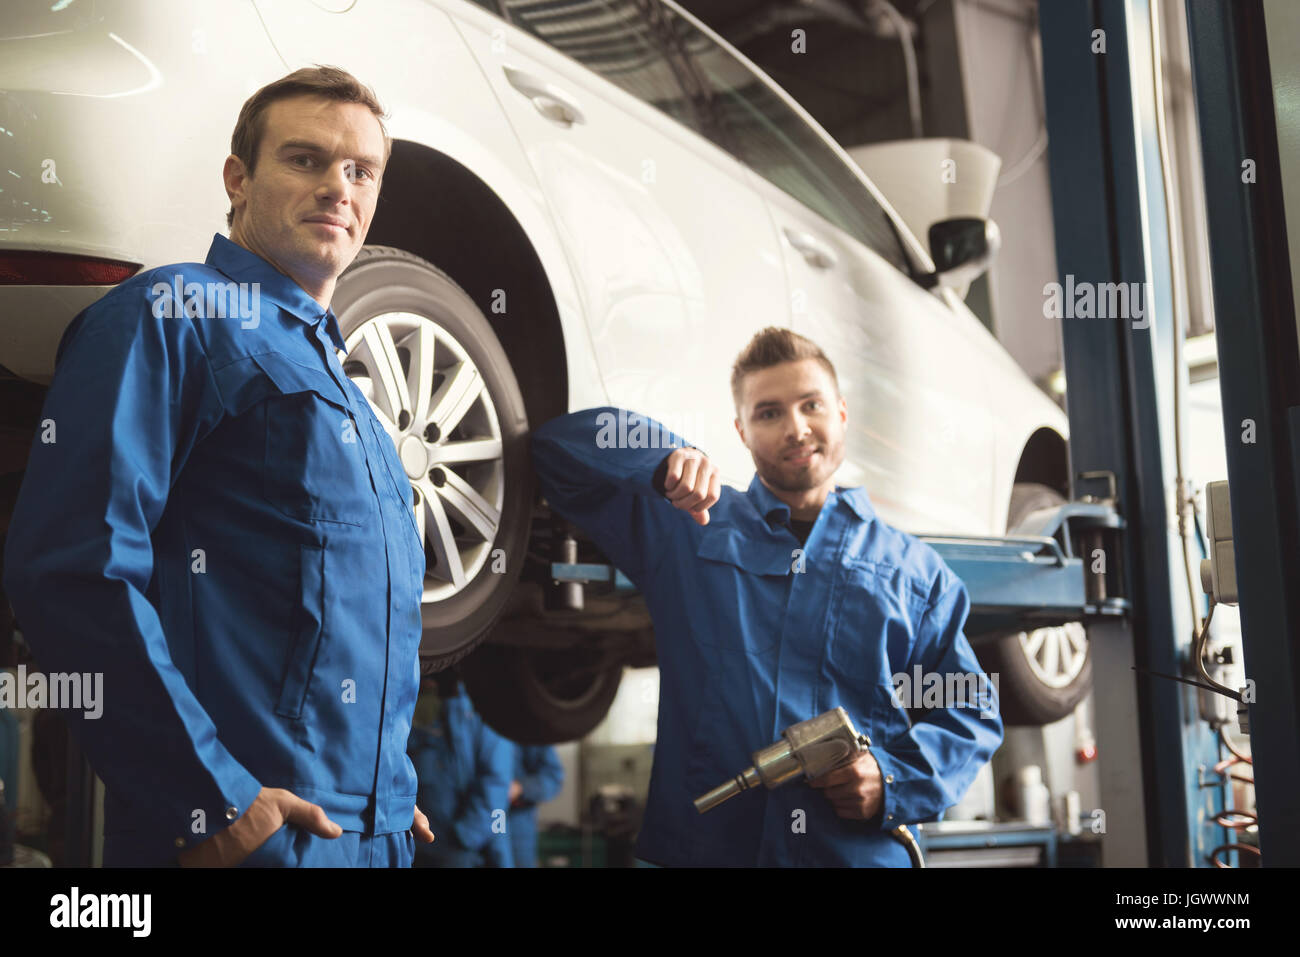 Two colleagues. Industrious serious talented servicemen standing by the auto and deciding what doing next after - Stock Image